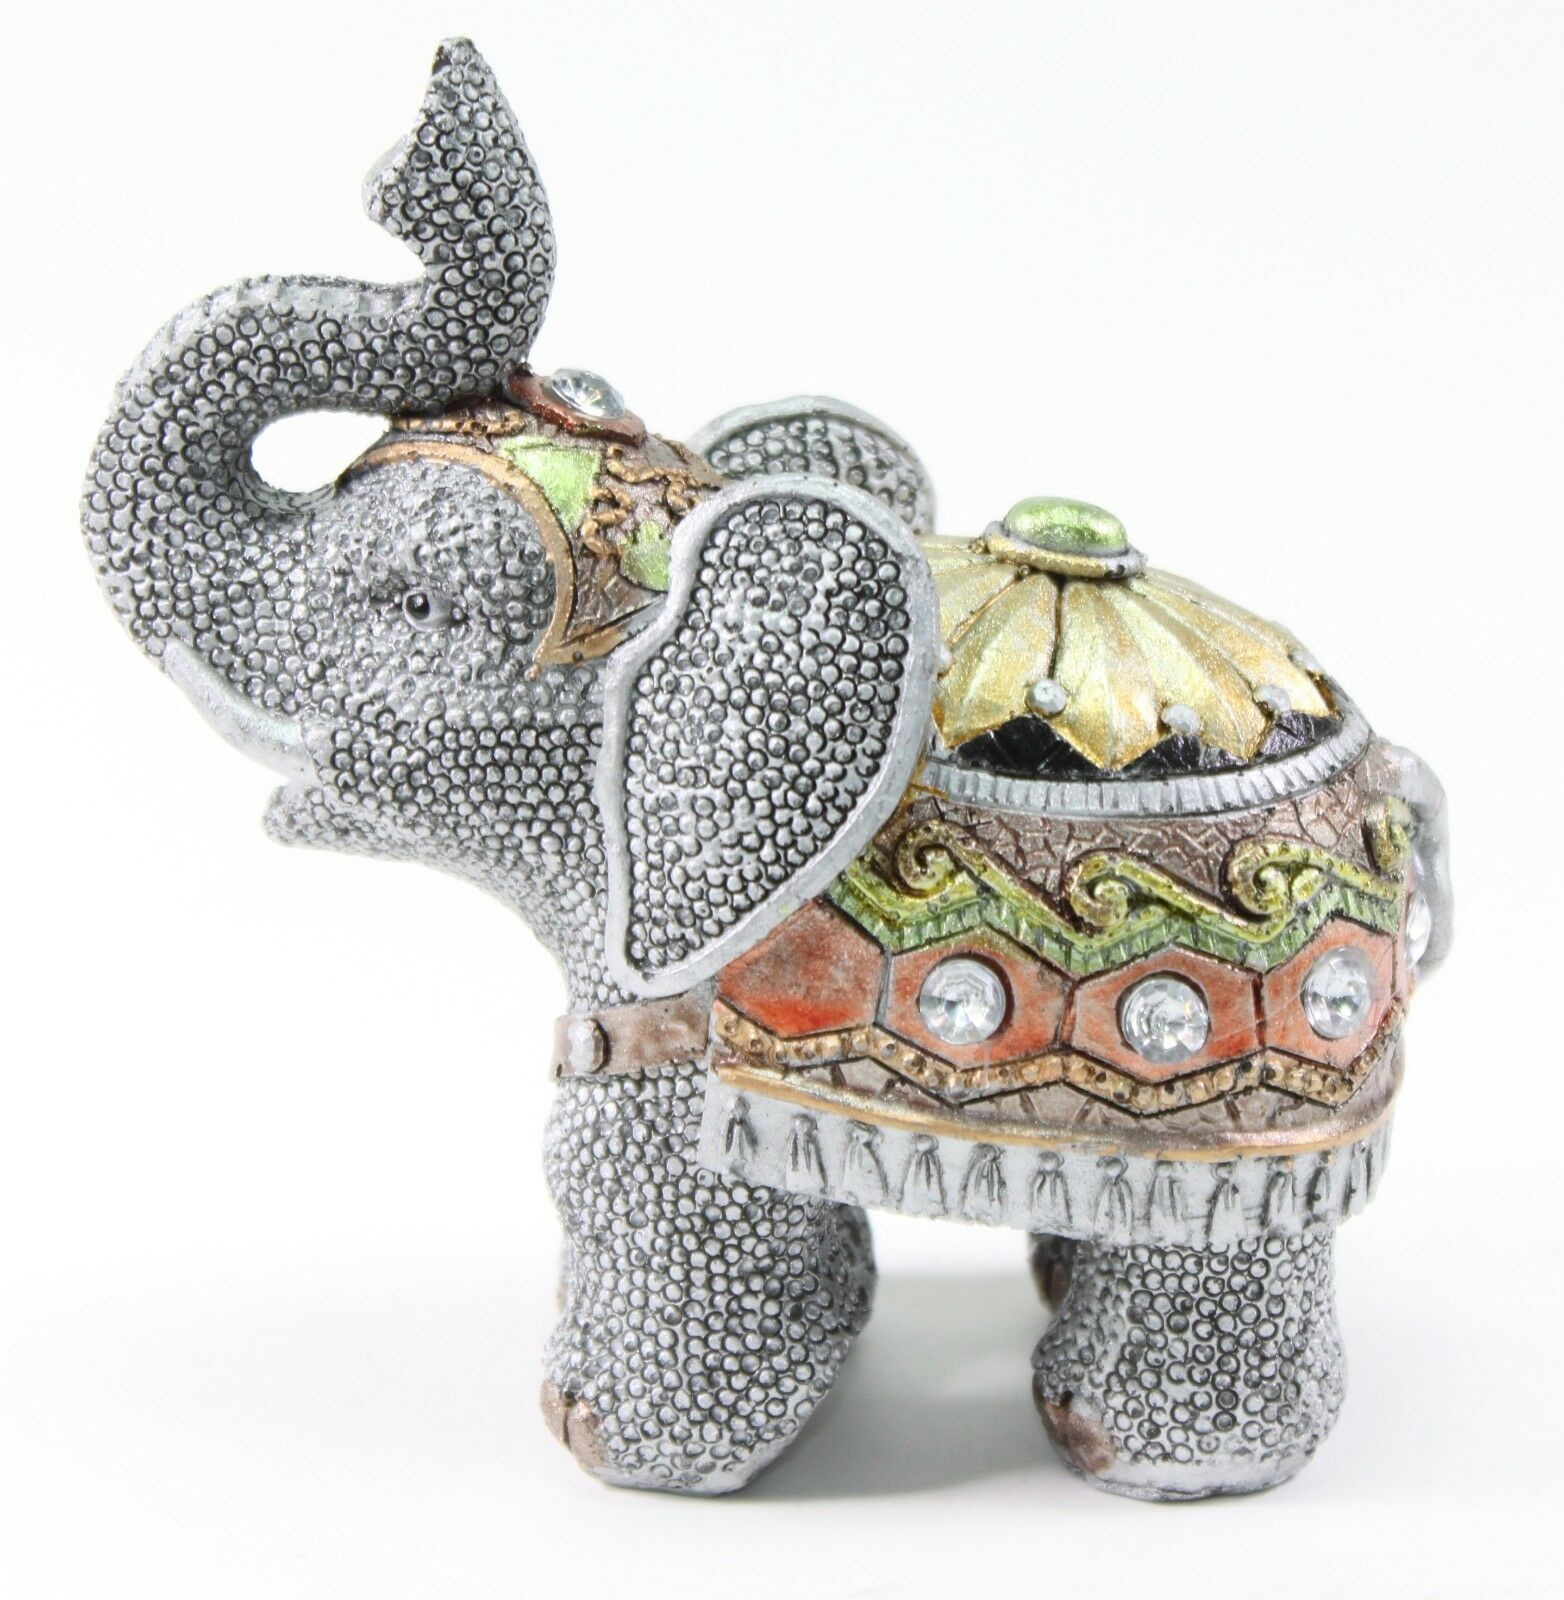 Feng shui 5 gray elephant trunk statue lucky figurine gift home decor ebay Elephant home decor items